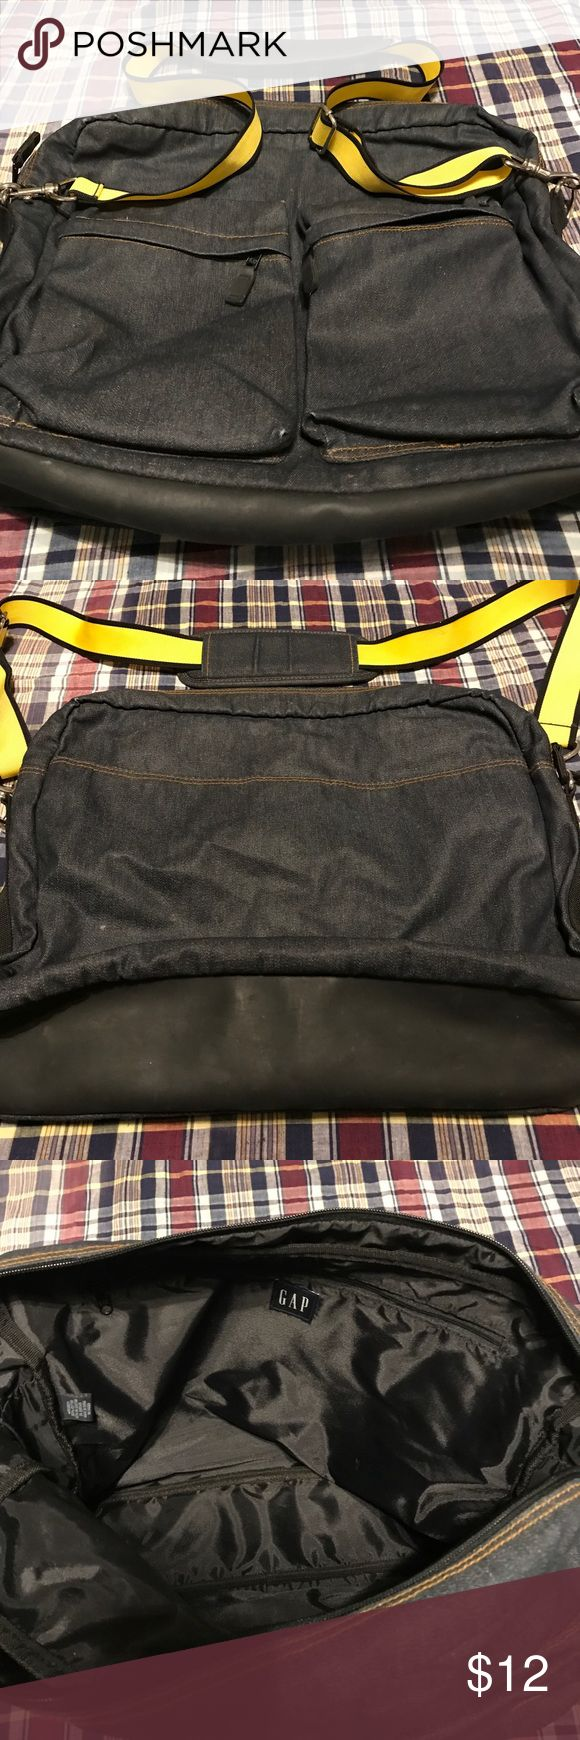 """GAP dark denim crossbody (large) bag, purse/laptop EUC Gap denim cross body bag or laptop/carryall. Only carried a couple of times, still in excellent condition. Dark denim body, black leather or vinyl bottom (I'm not sure which - the tag doesn't say), silver grommets/hardware and yellow/black adjustable shoulder strap. Large zipper pocket inside and x-large Velcro pocket on back of bag as well as two deep zipper pockets on front of bag. Dimensions are: 17 1/2"""" across, 14"""" top to bottom, 3…"""